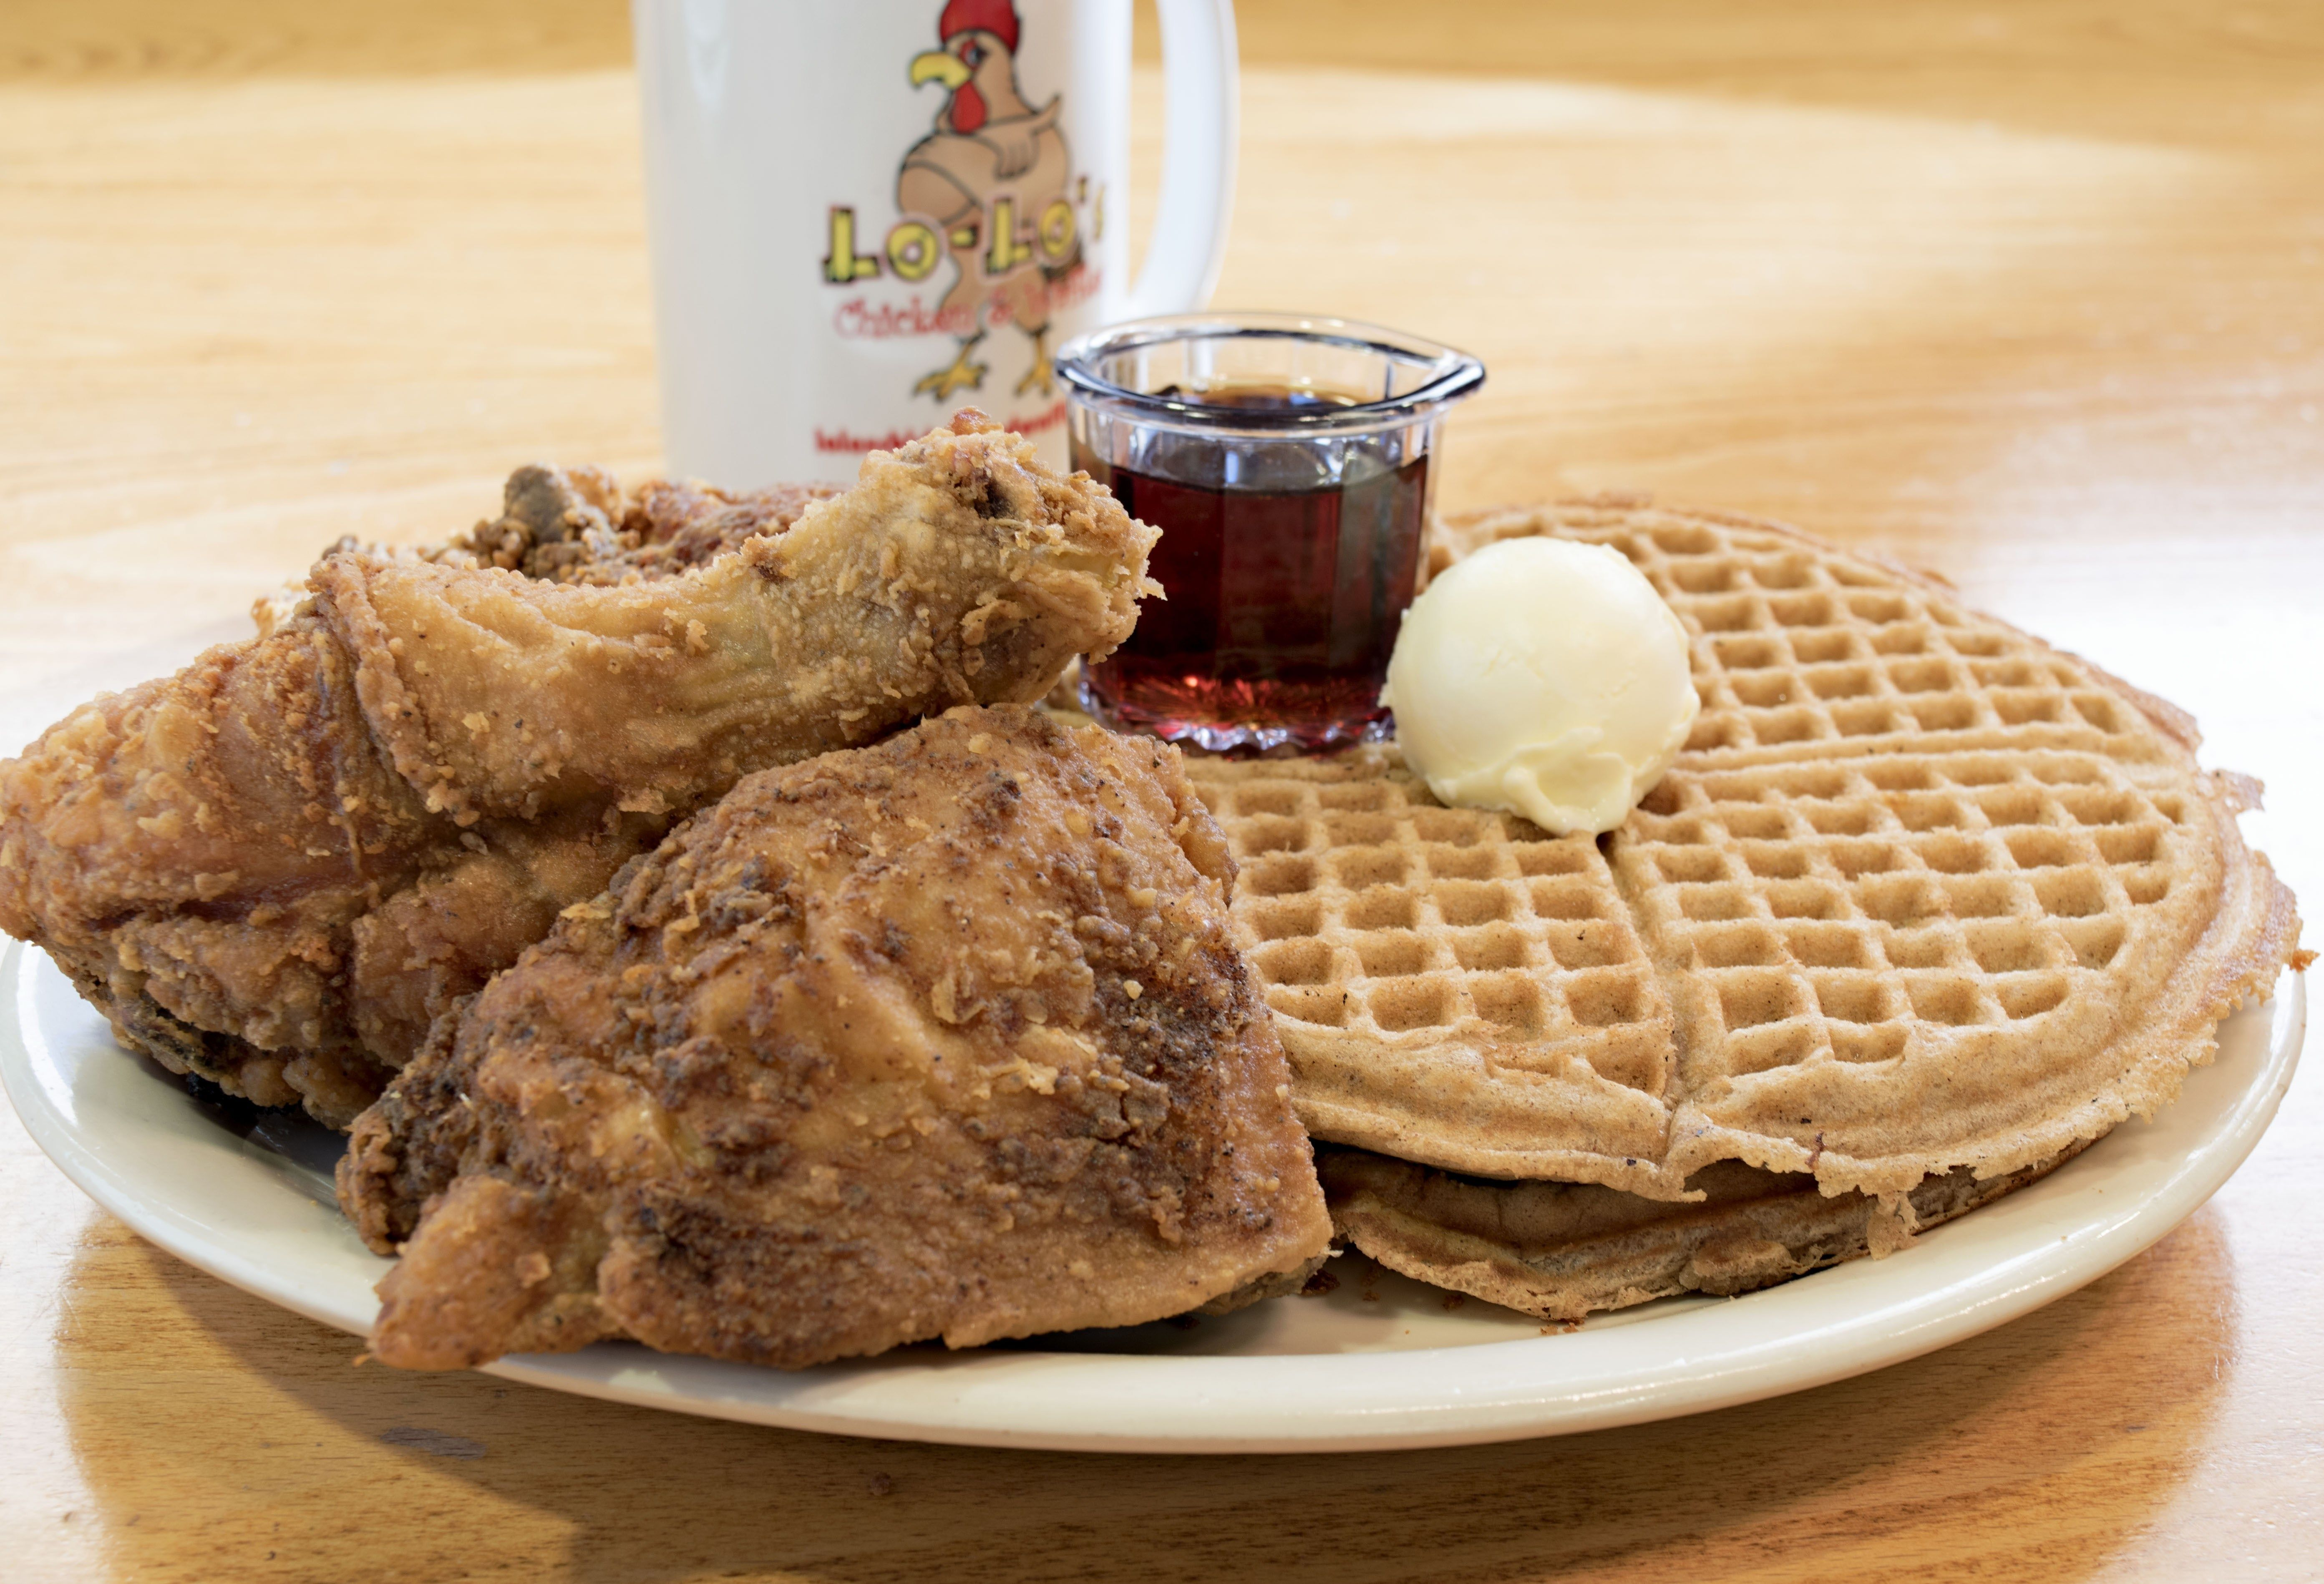 Phoenix Sky Harbor Restaurants A Field Guide To Airport Dining All The Worthwhile Airport Eats Chicken And Waffles Matts Big Breakfast Coffee Recipes